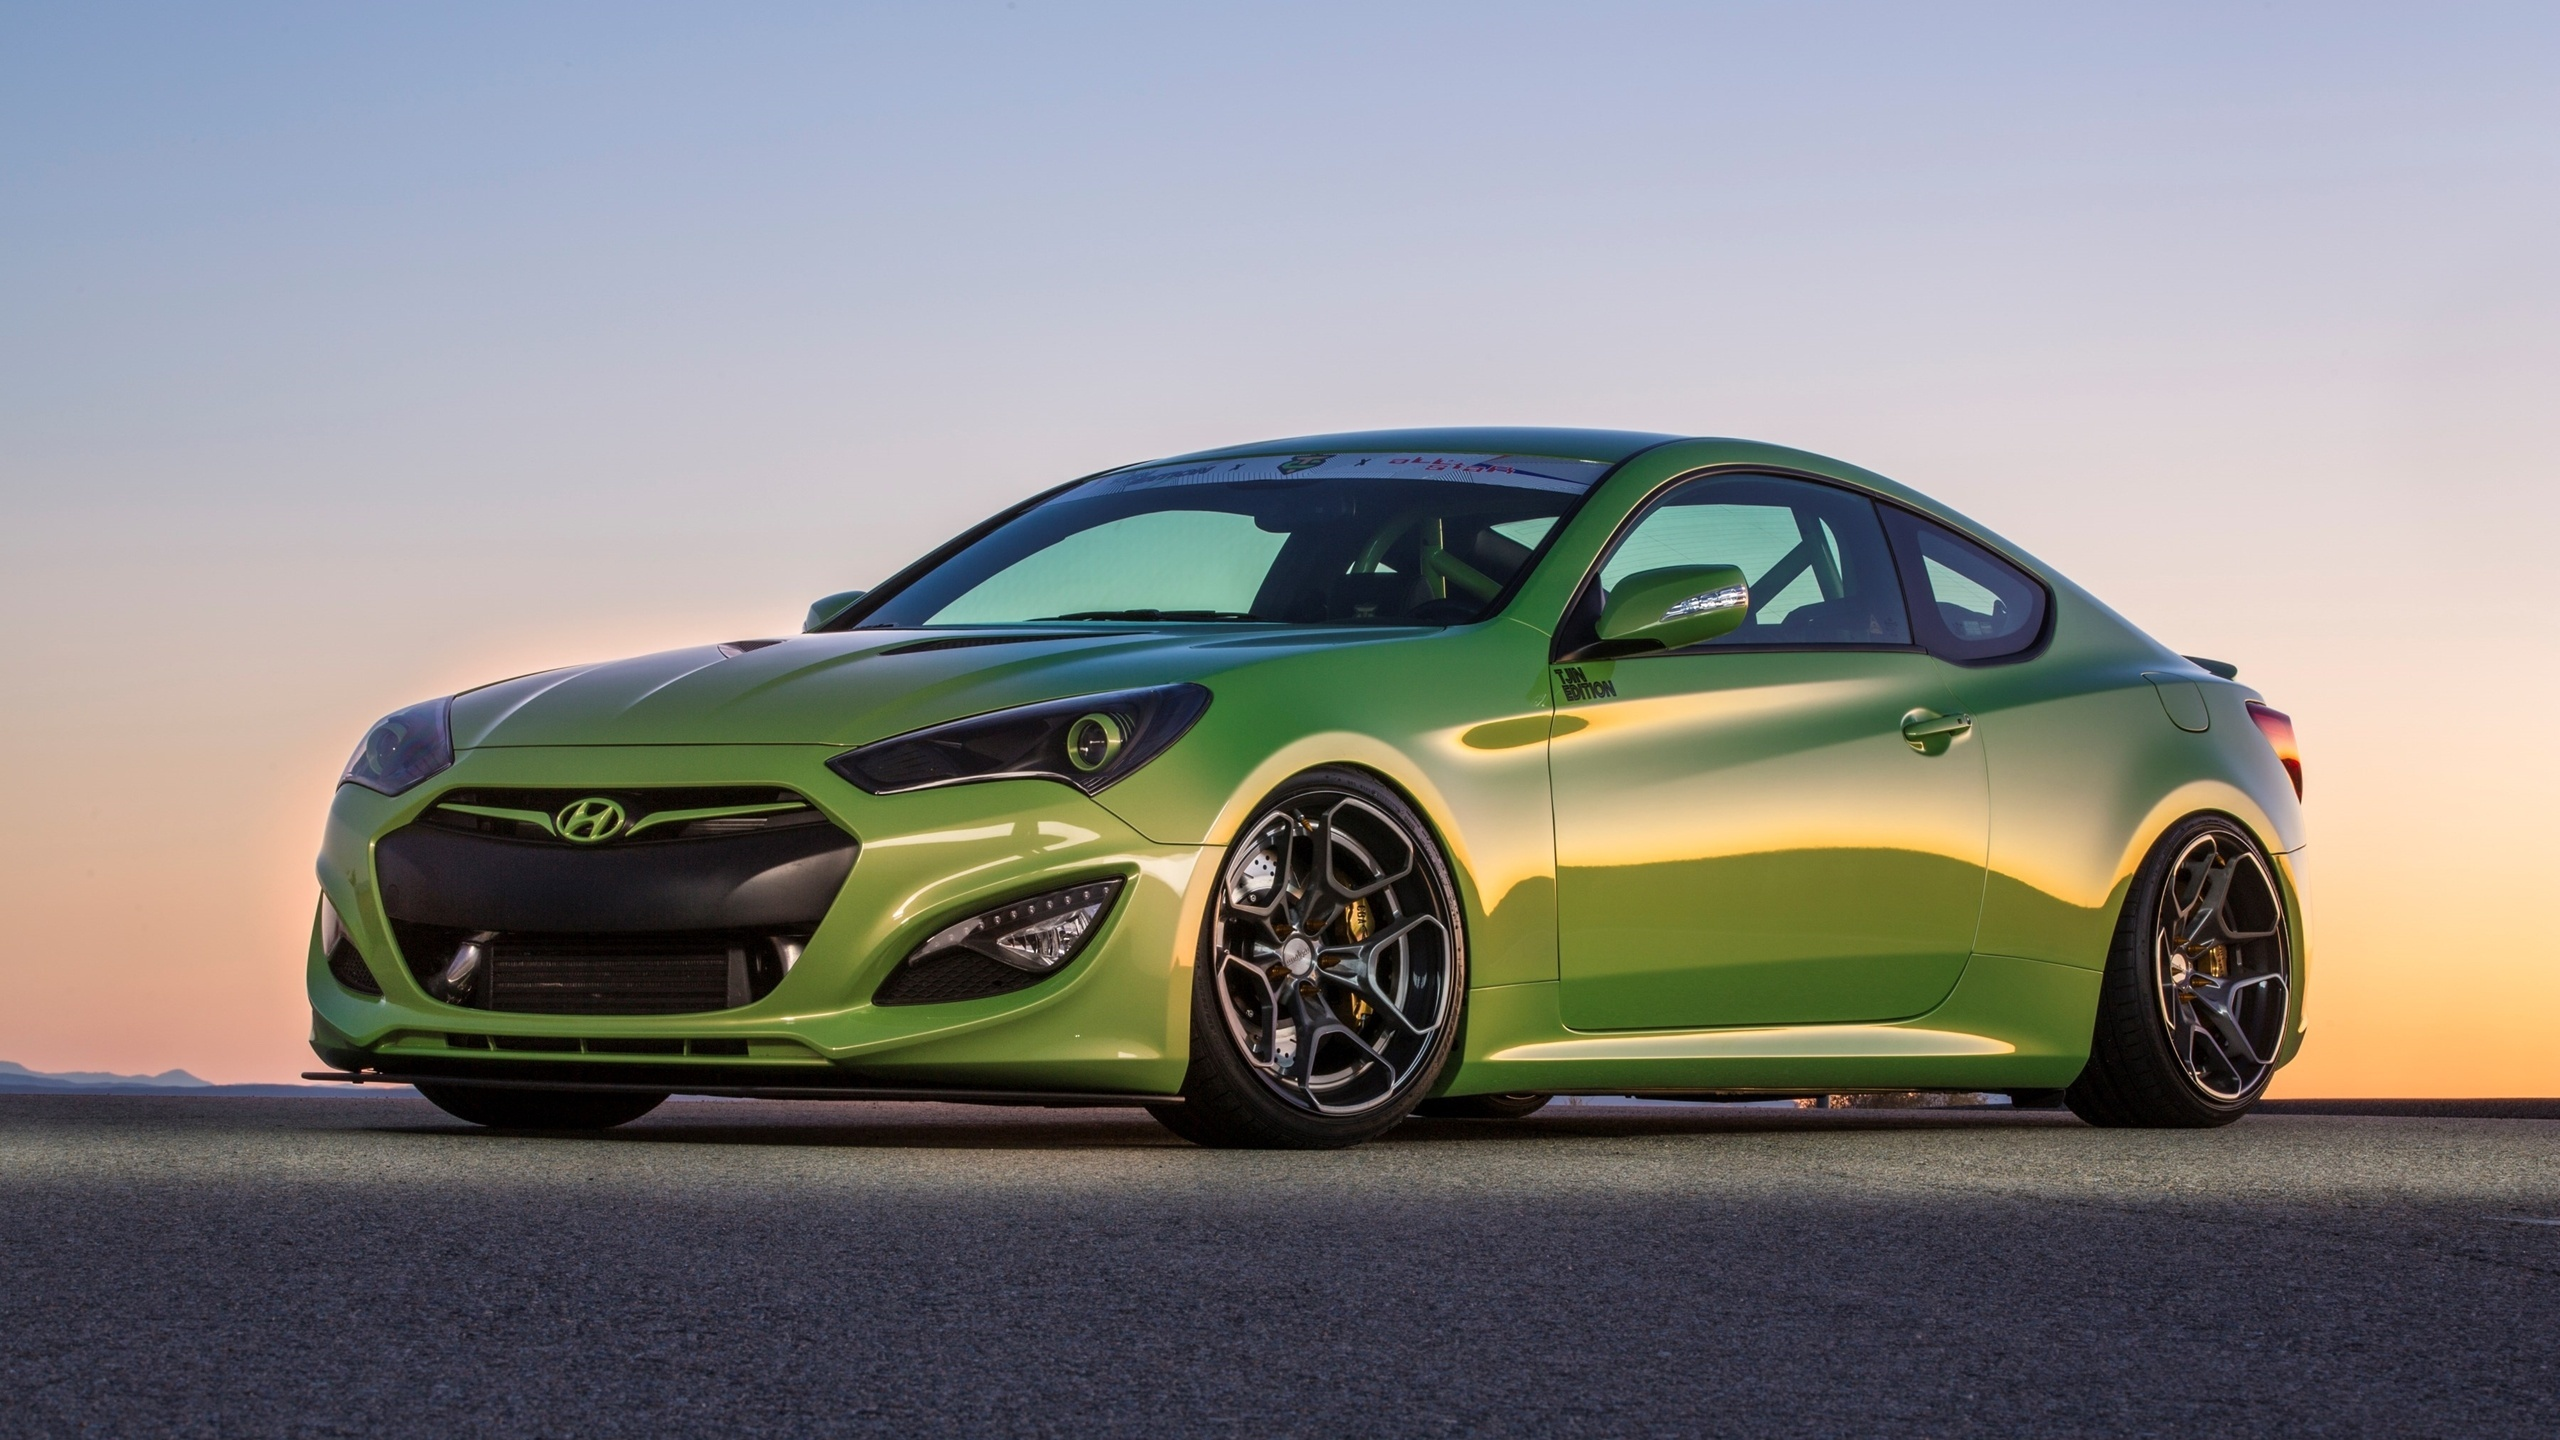 Pictures Of Hyundai Genesis Coupe